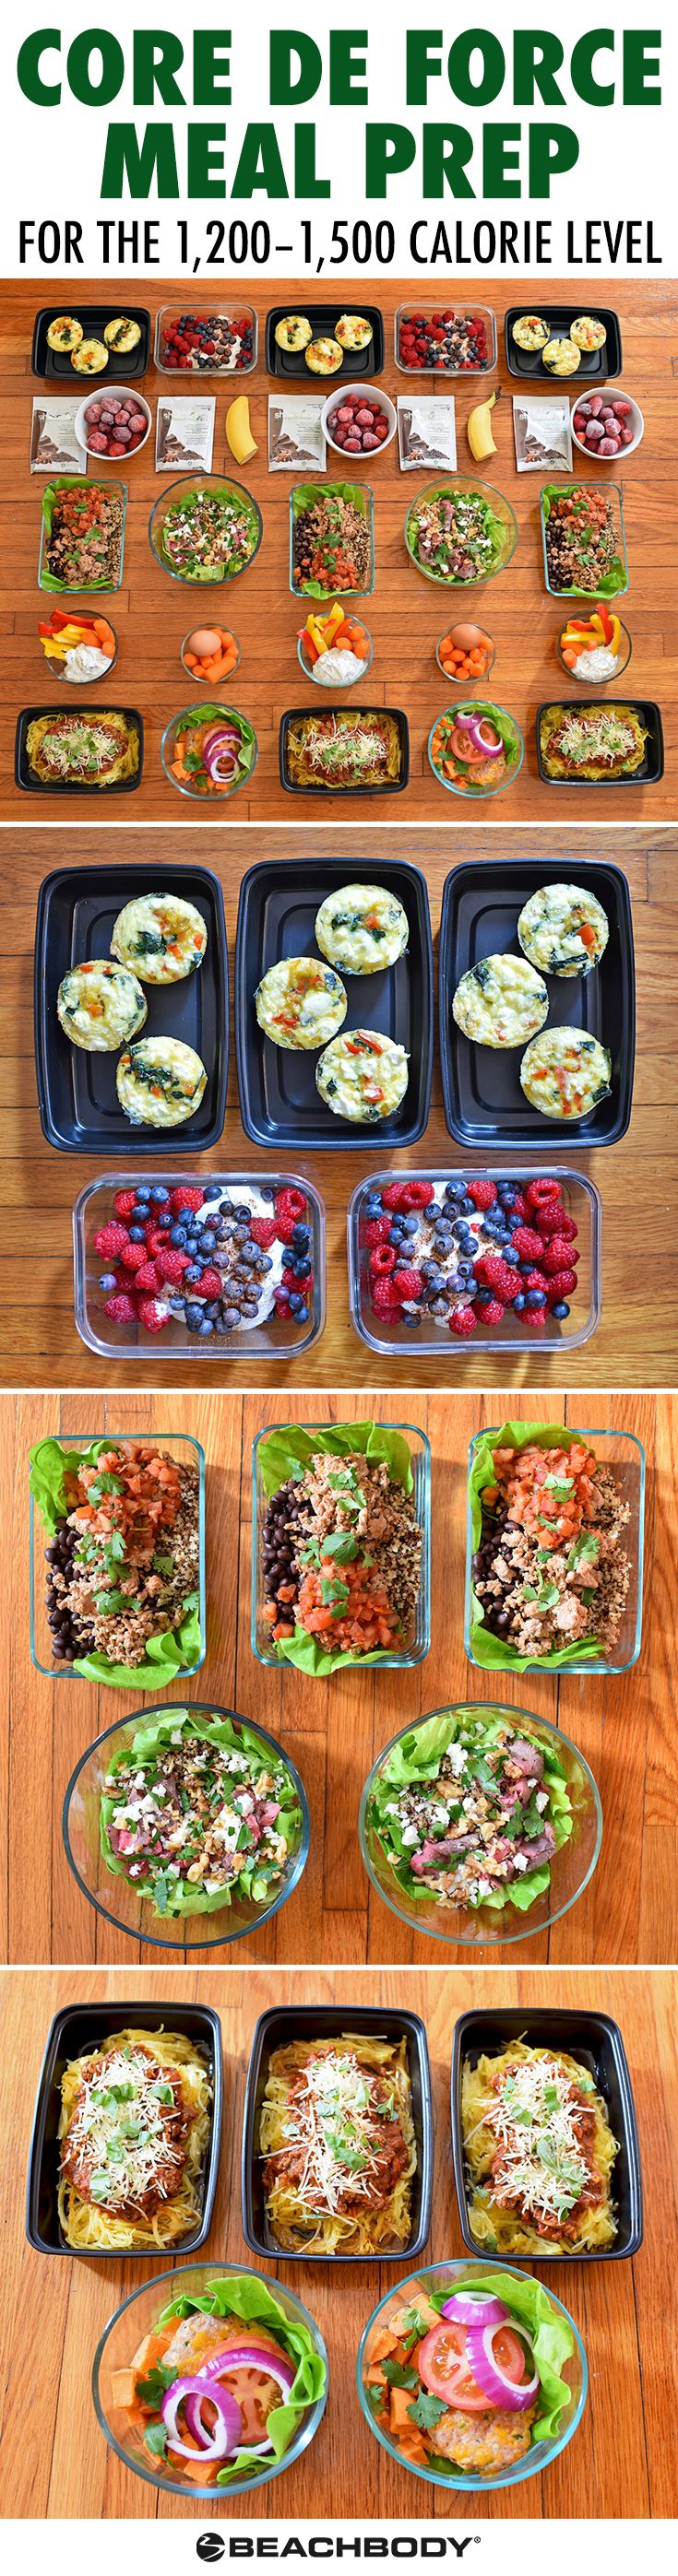 Core de Force Meal Plan for the 1,200-1,400 Calorie Level